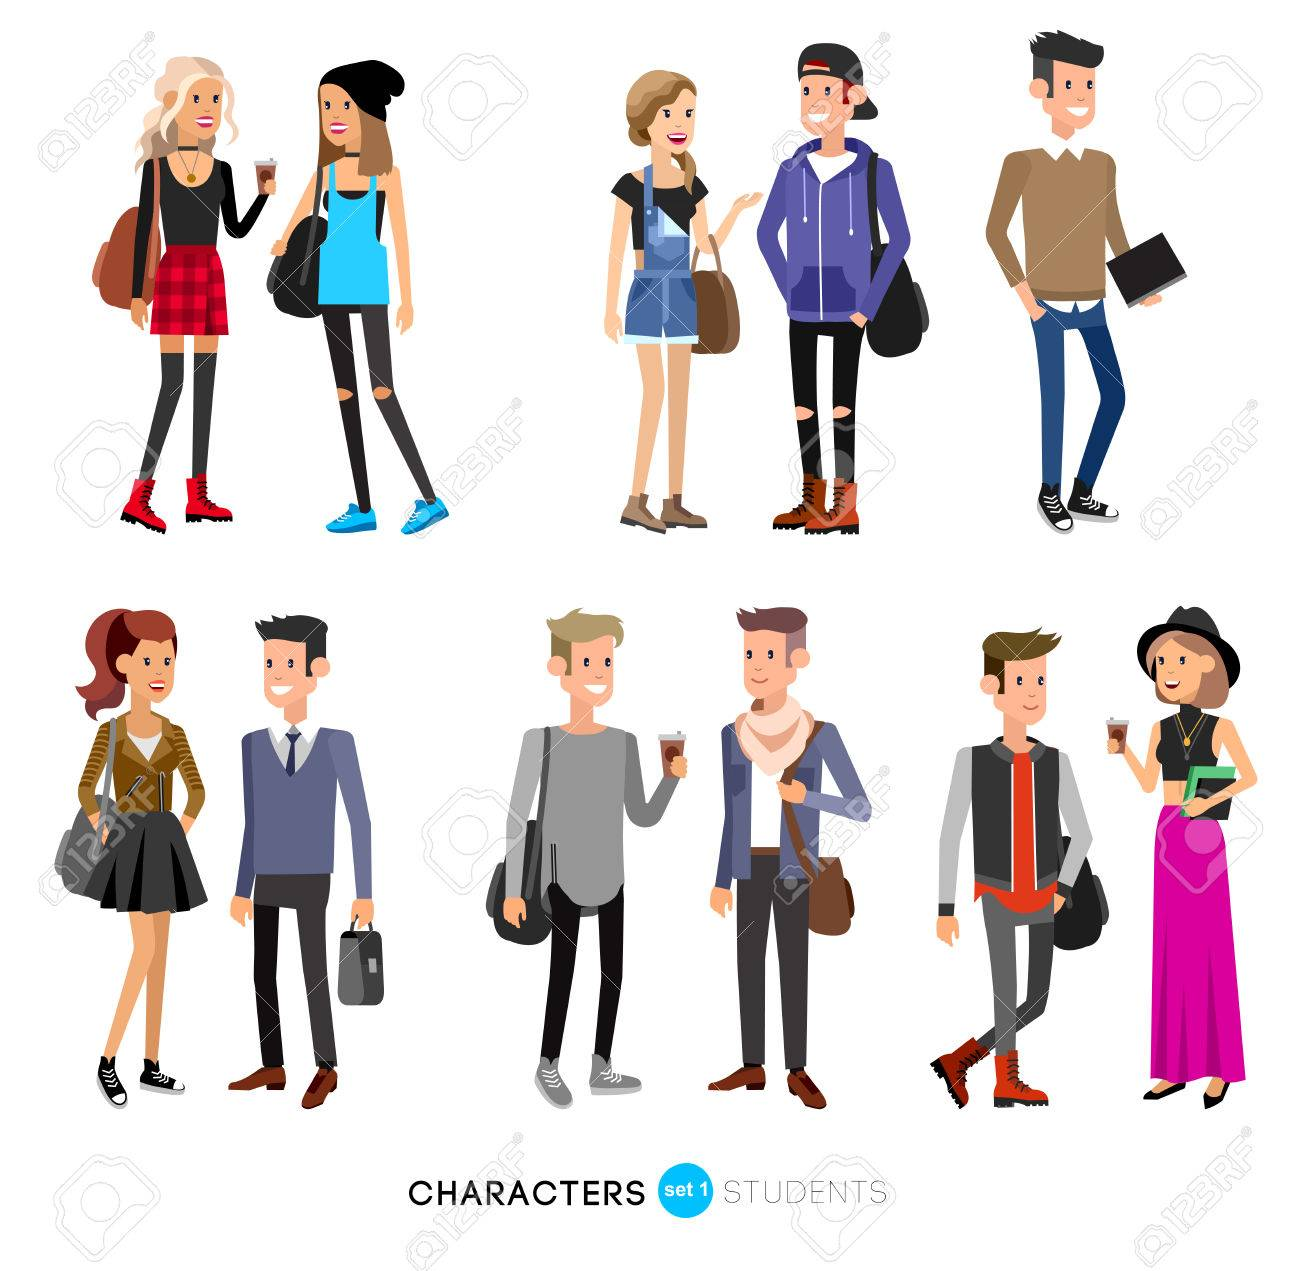 Detailed character students, student Lifestyle, couple of young people in street clothes style. Illustration of character student. Vector flat student go to study - 57300100